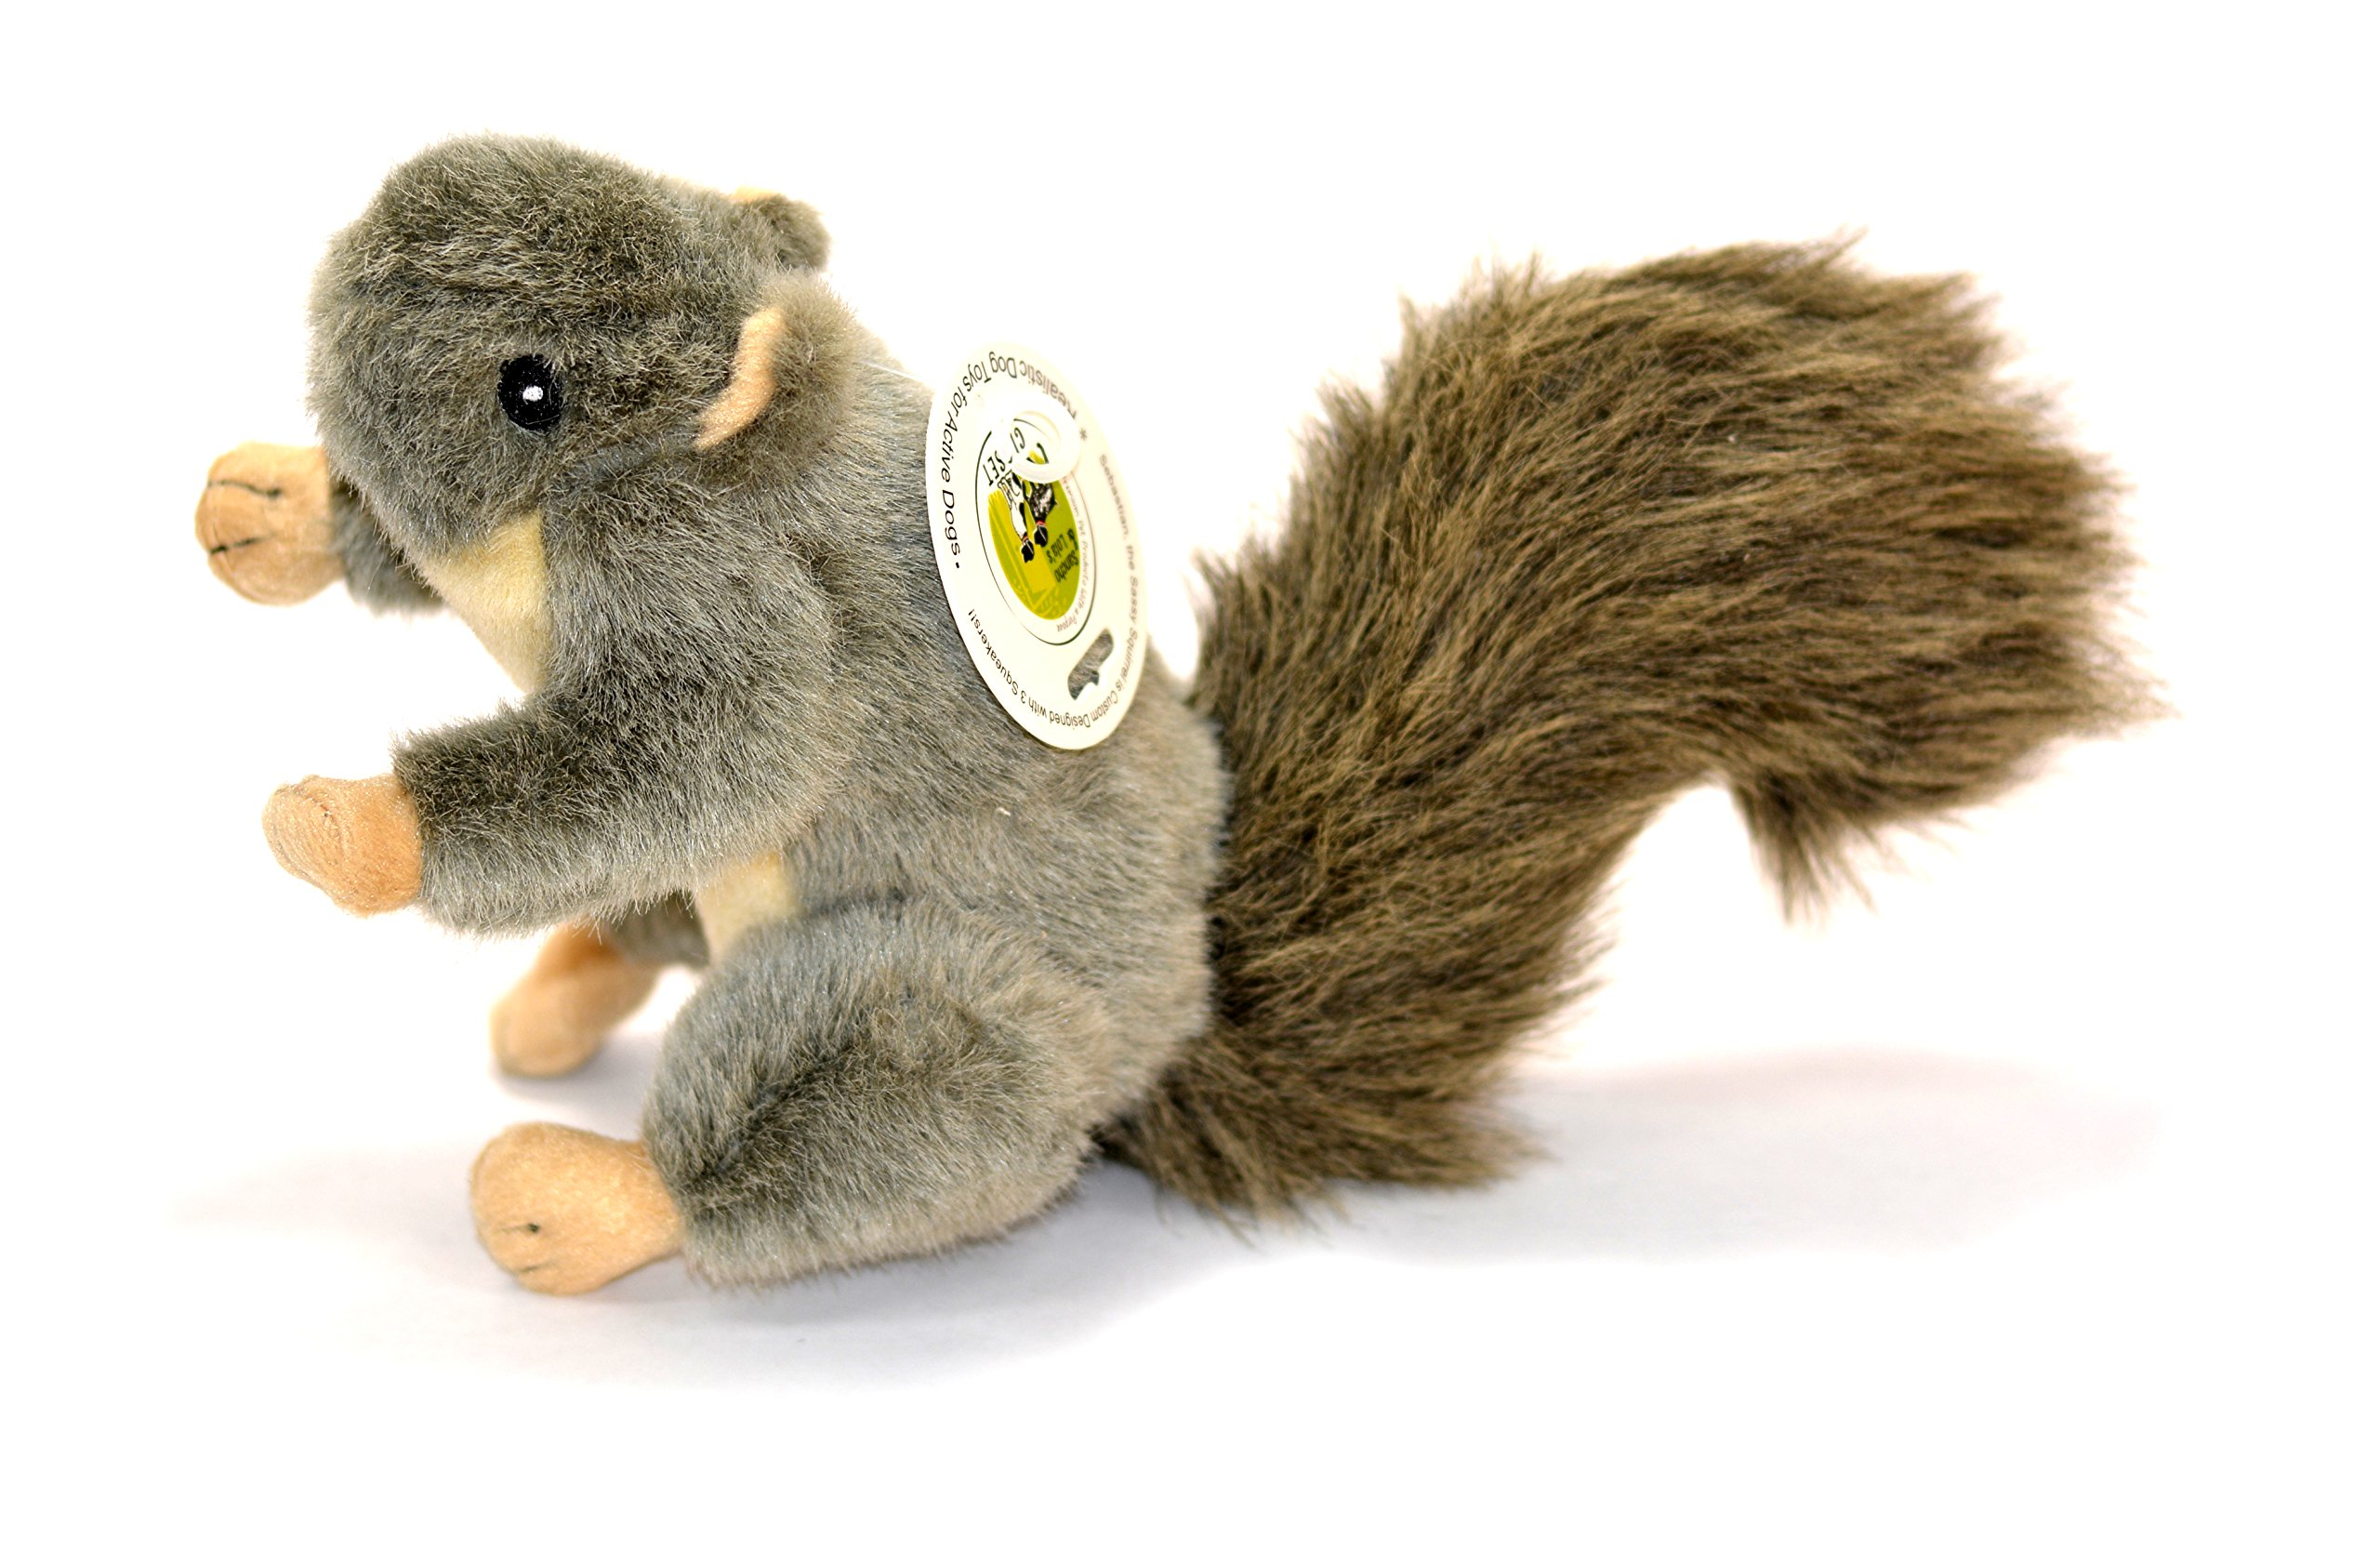 'Sebastian' Plush Squirrel Dog Toy with Squeaker by Sancho & Lola's MEDIUM (9-inch) Supporting Rescue Dogs Since 2015